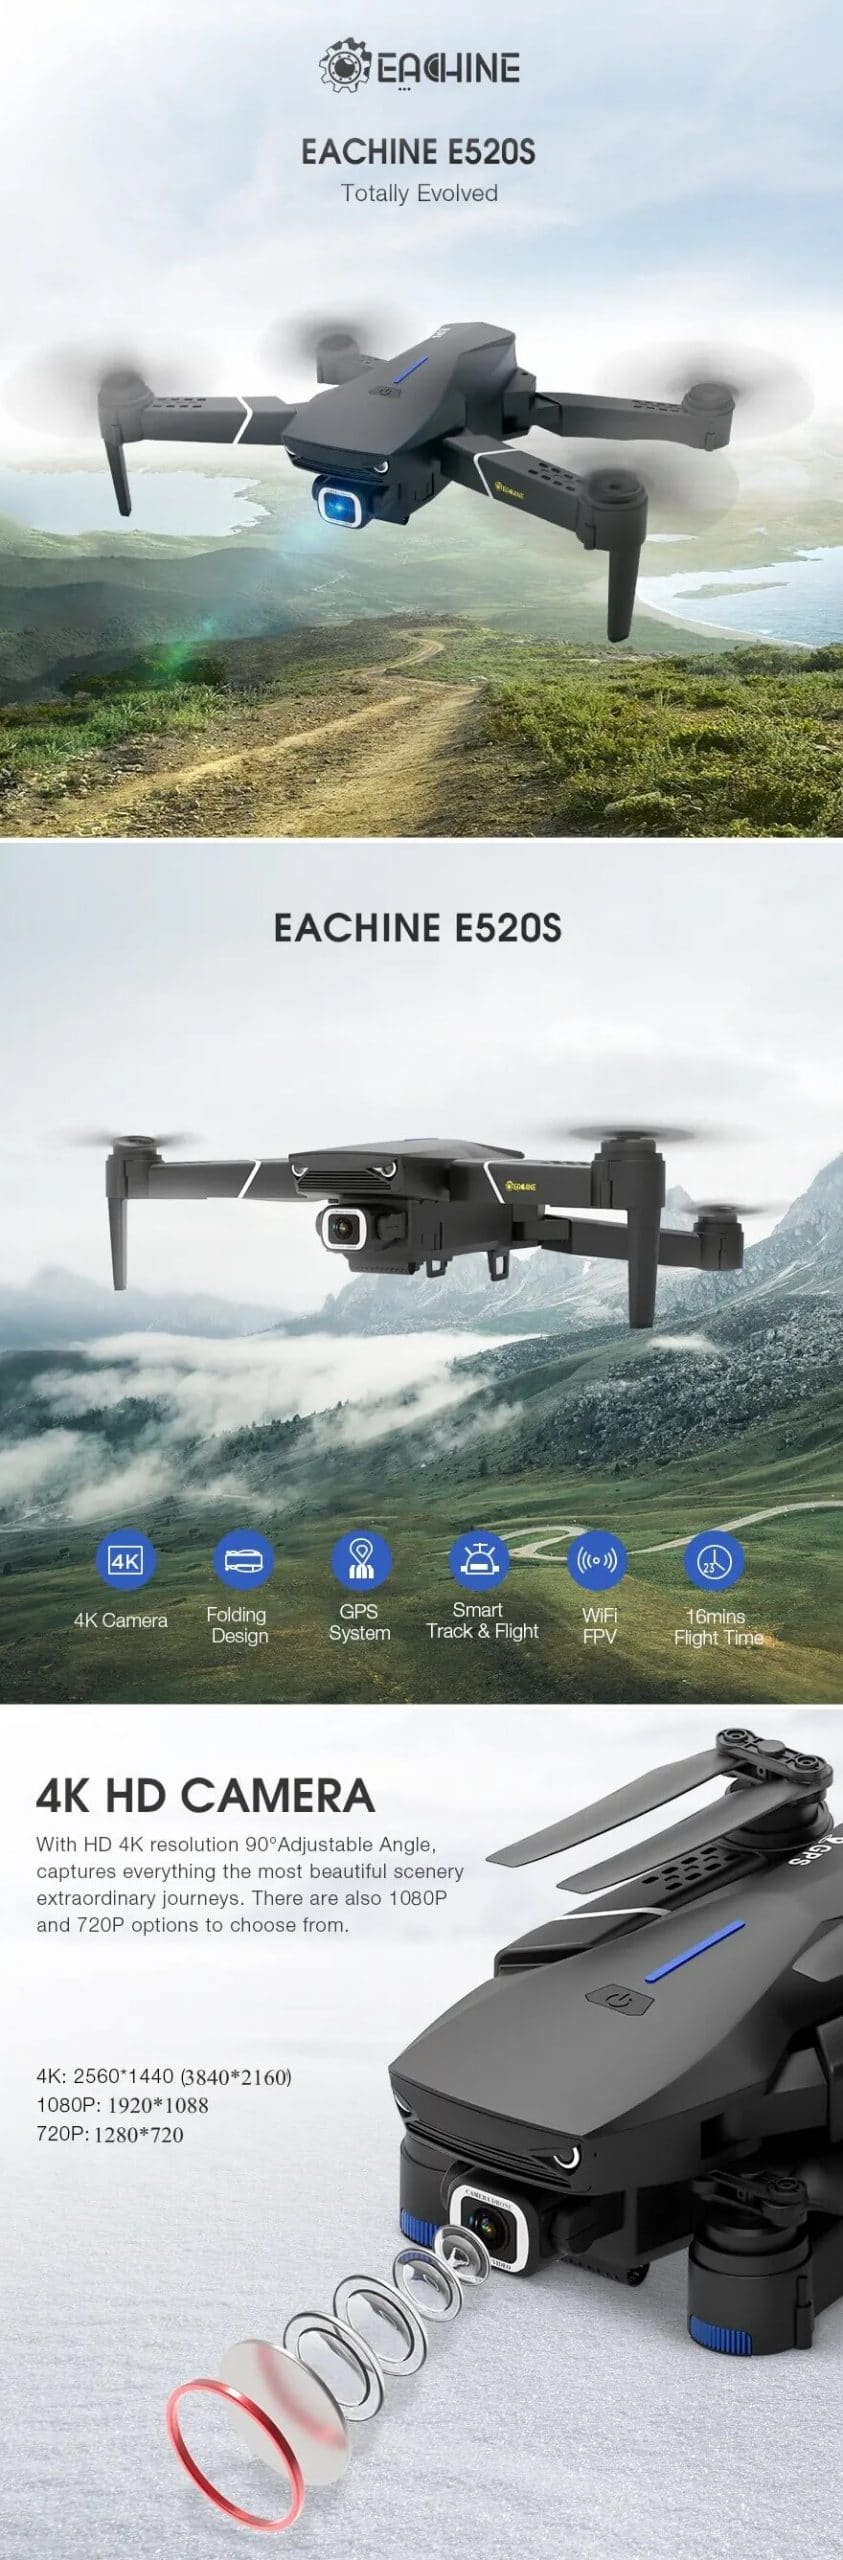 RC Drone Quadcopter 2020 Model Deals at Banggood